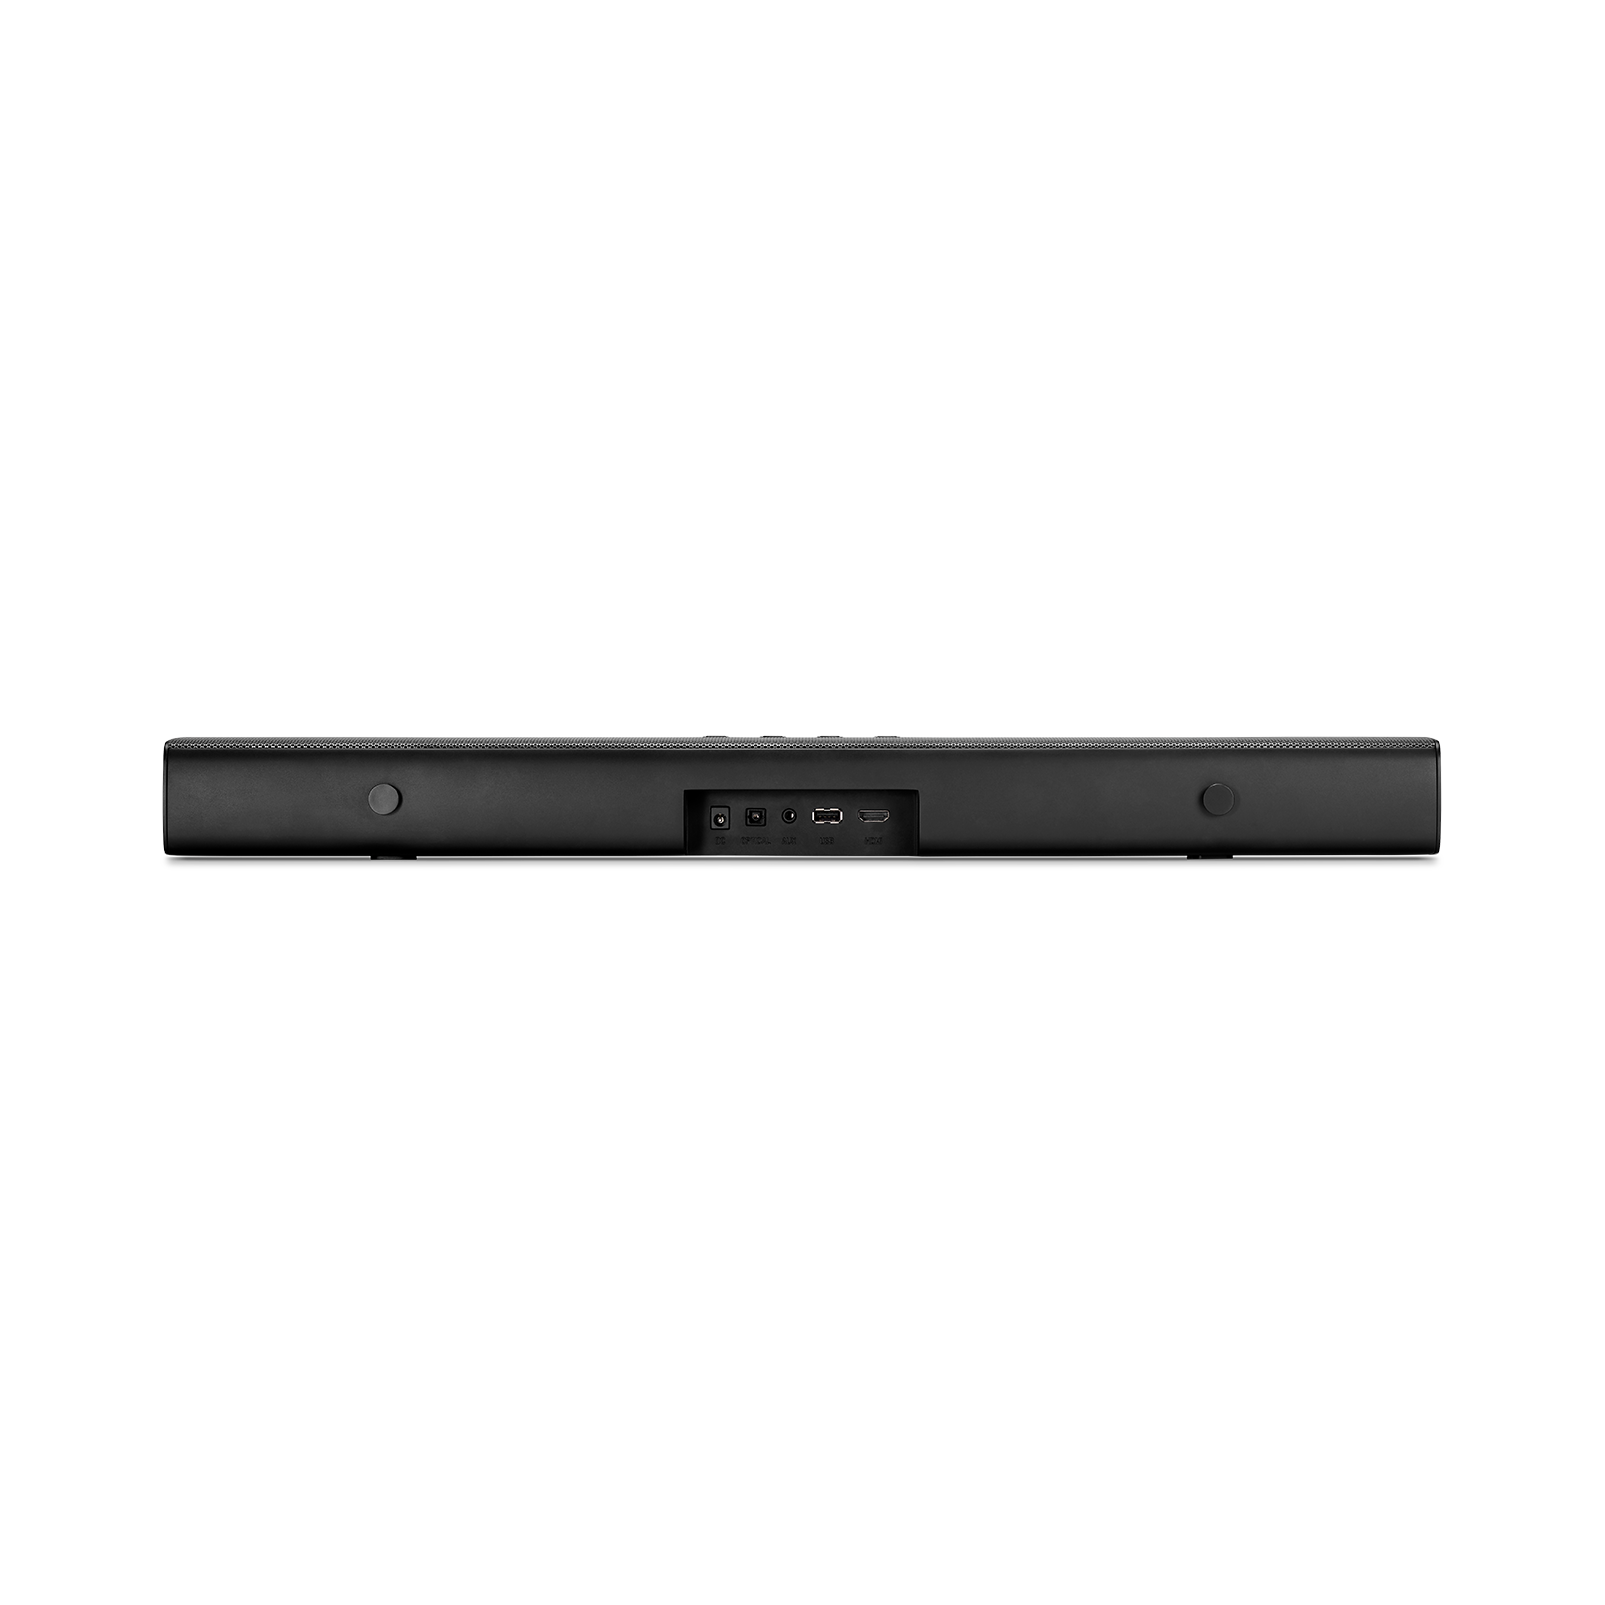 ps3 surround sound system manual